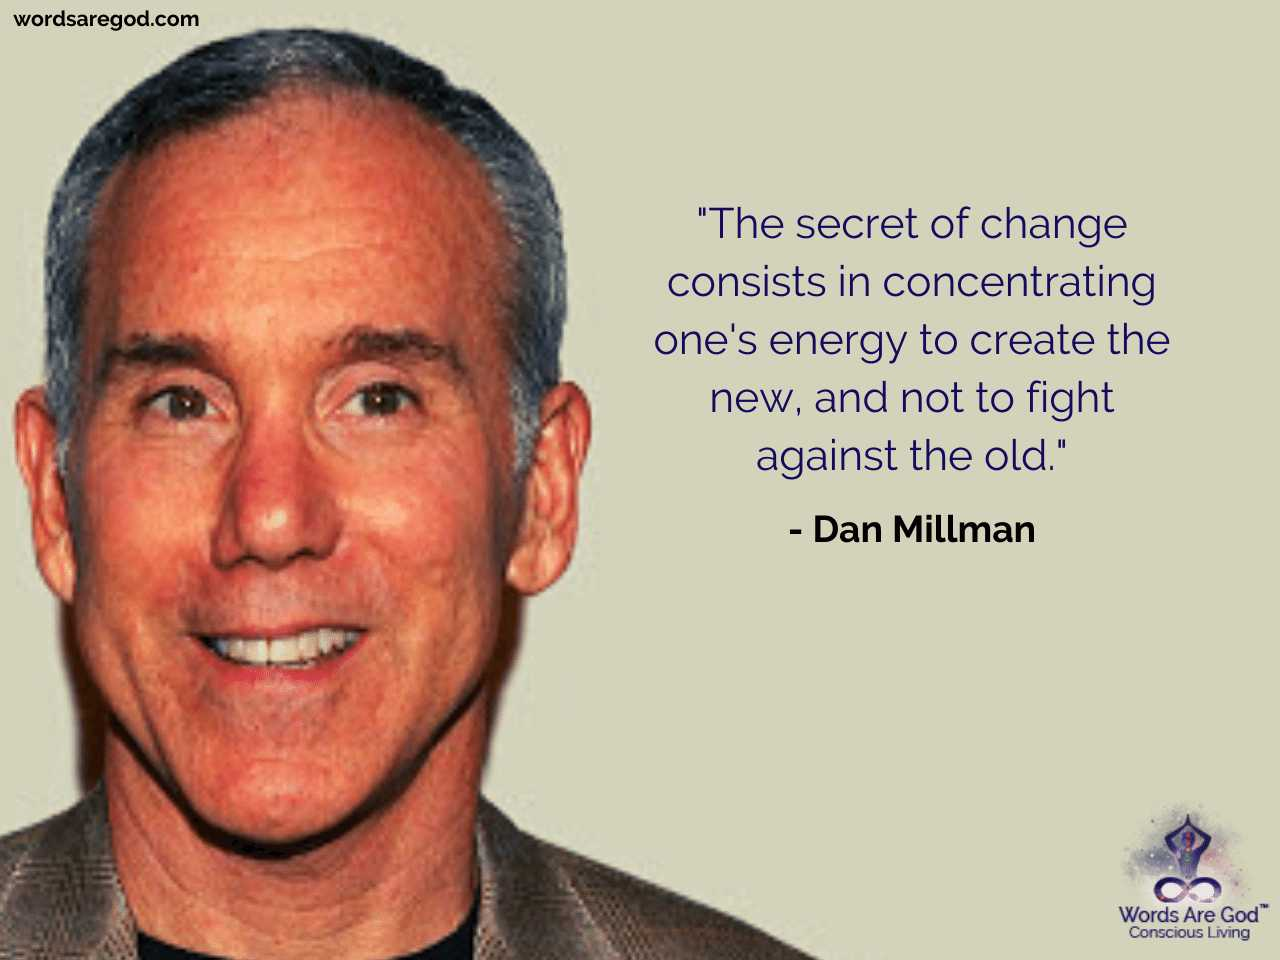 Dan Millman Inspirational Quote